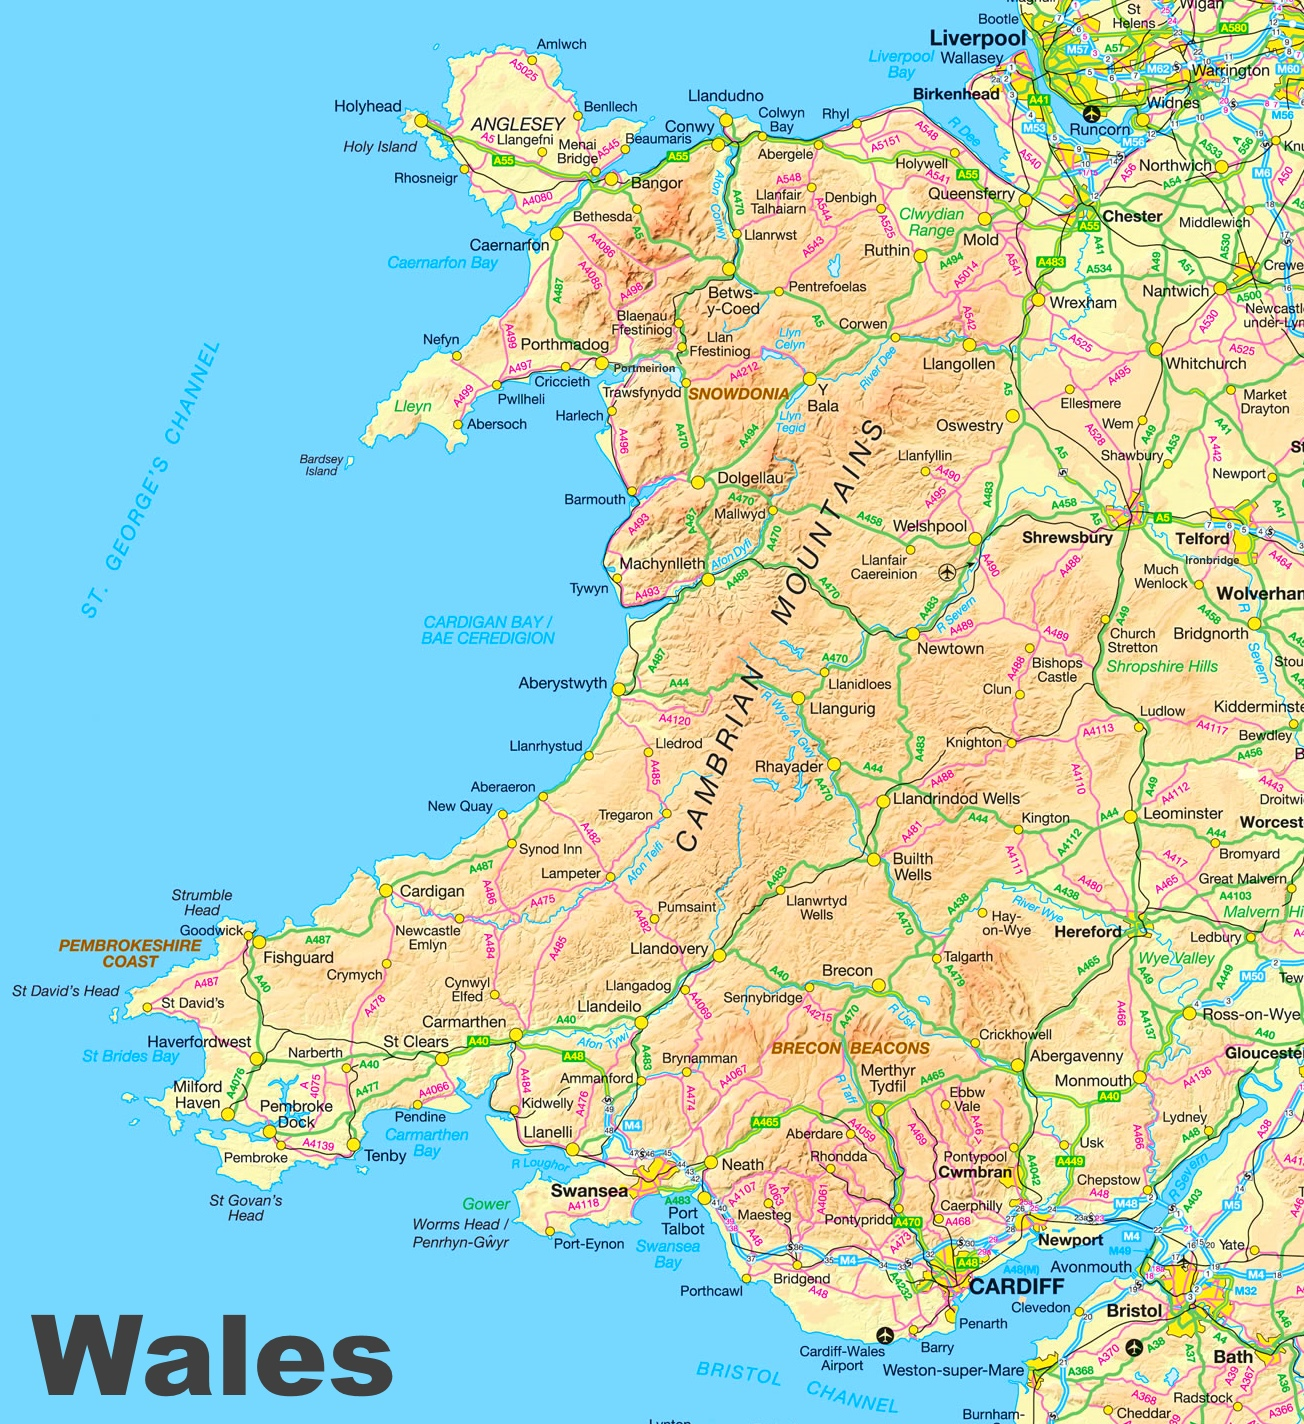 Road Map Of Wales Wales road map Road Map Of Wales